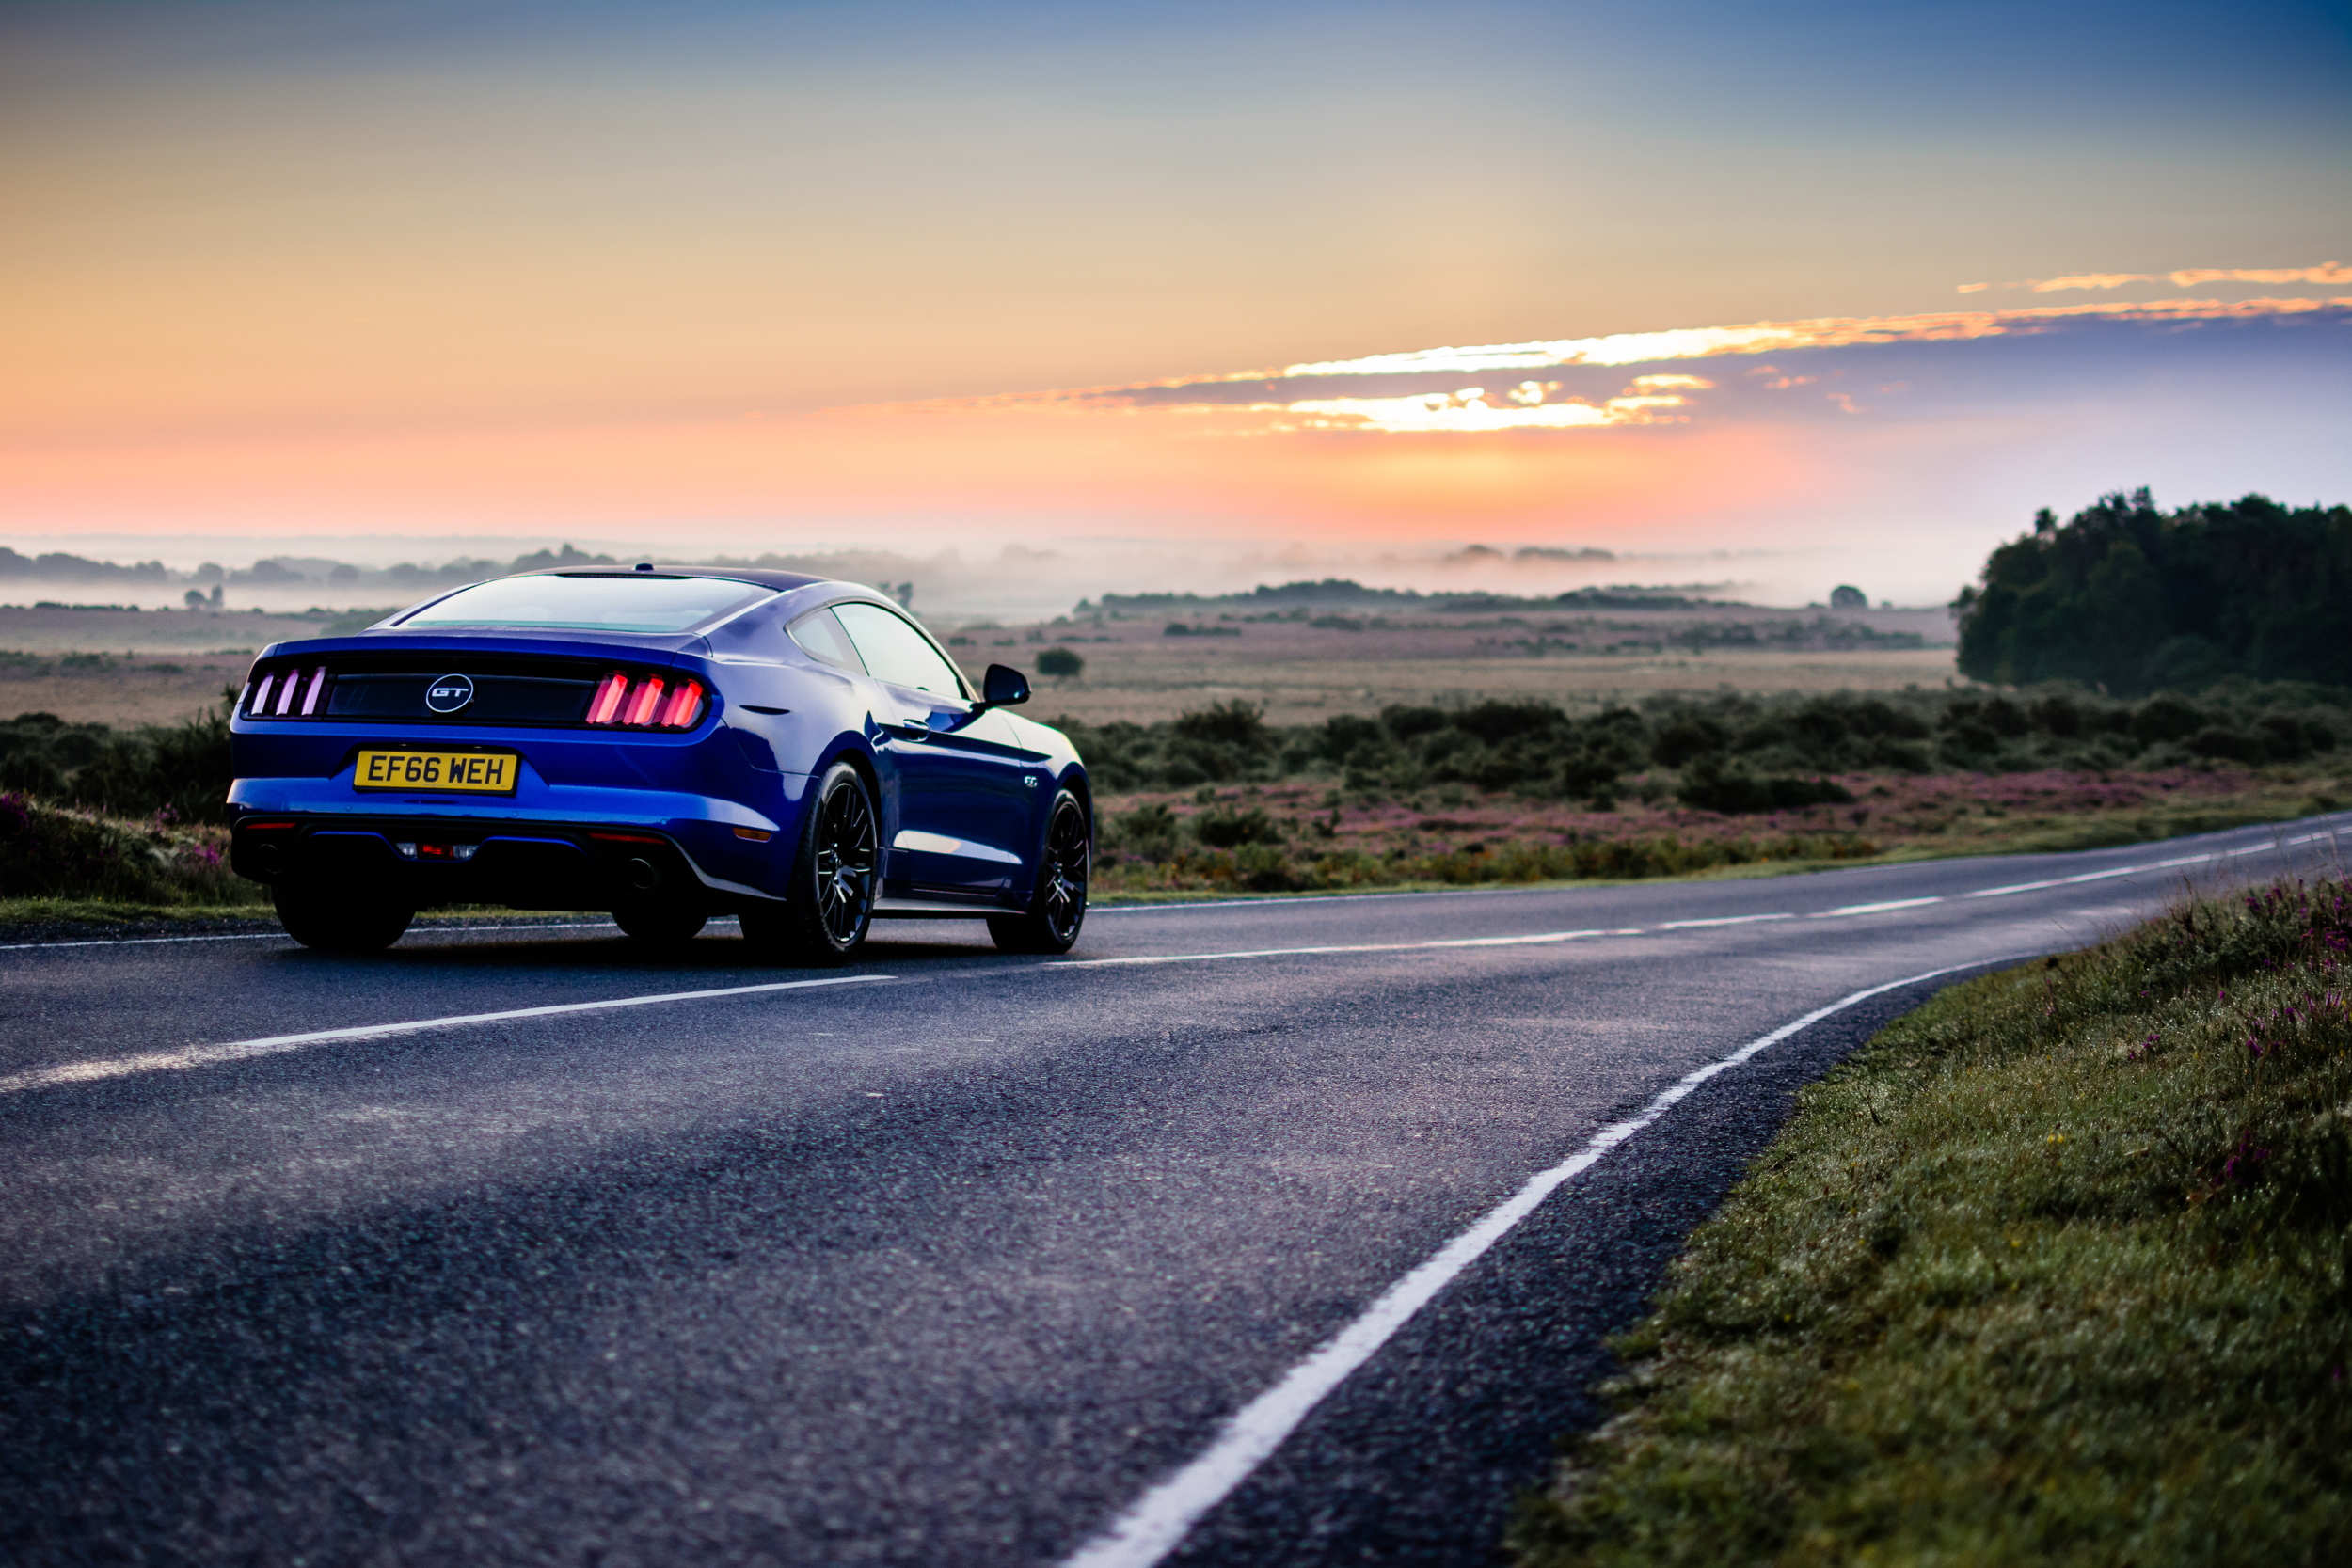 Ford Mustang GT sunrise road